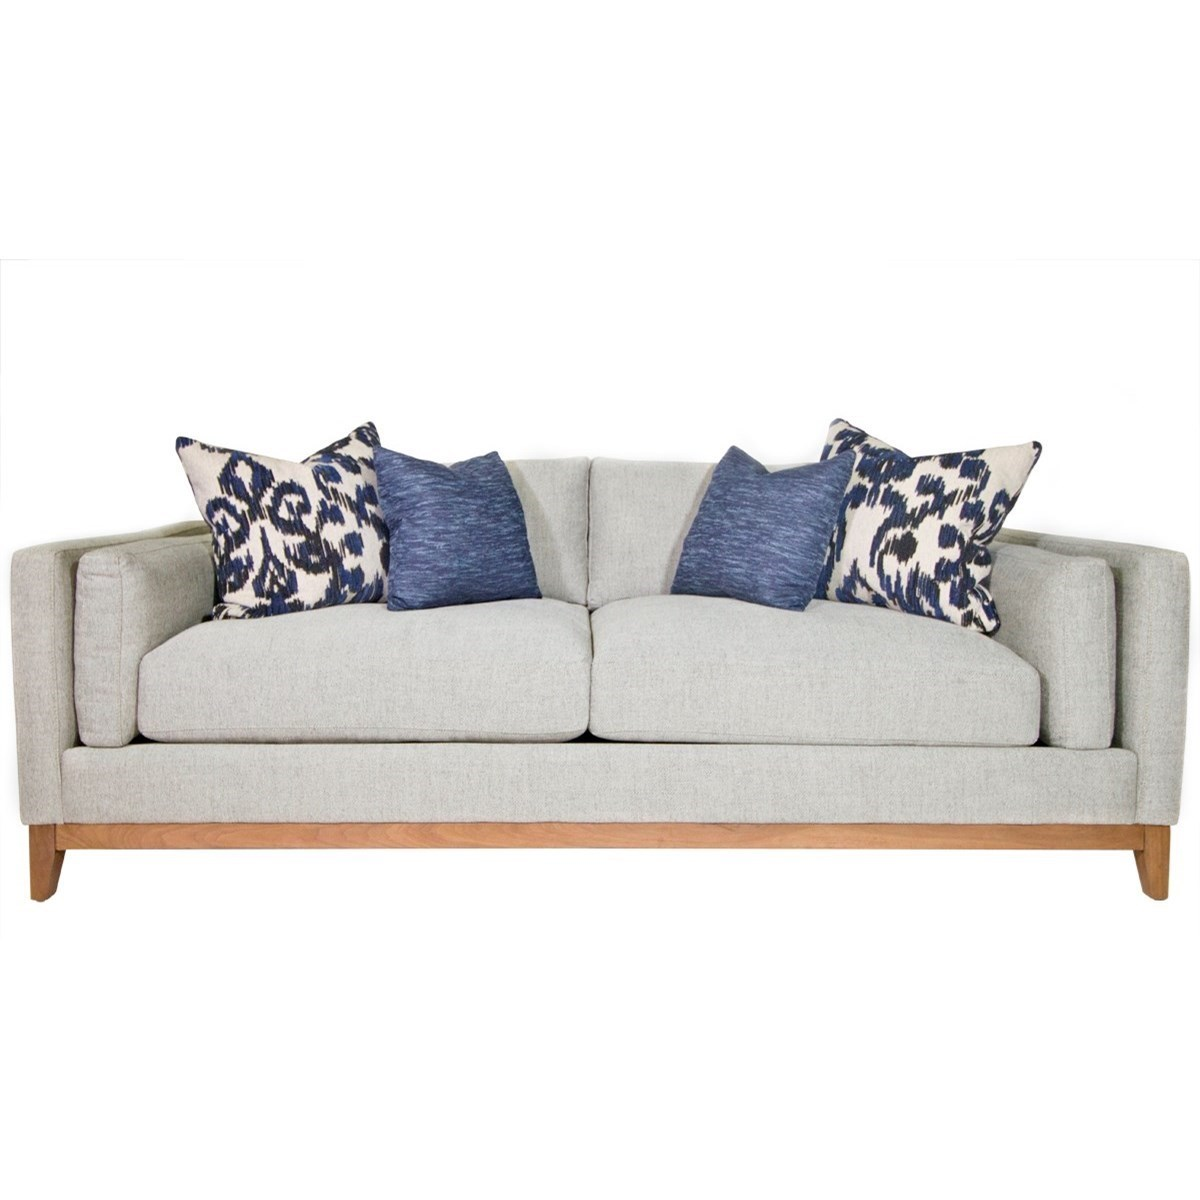 Jonathan Louis Kelsey Modern Estate Sofa With Bolster Arm Pillows And  Exposed Wood Base Rail   Darvin Furniture   Sofas